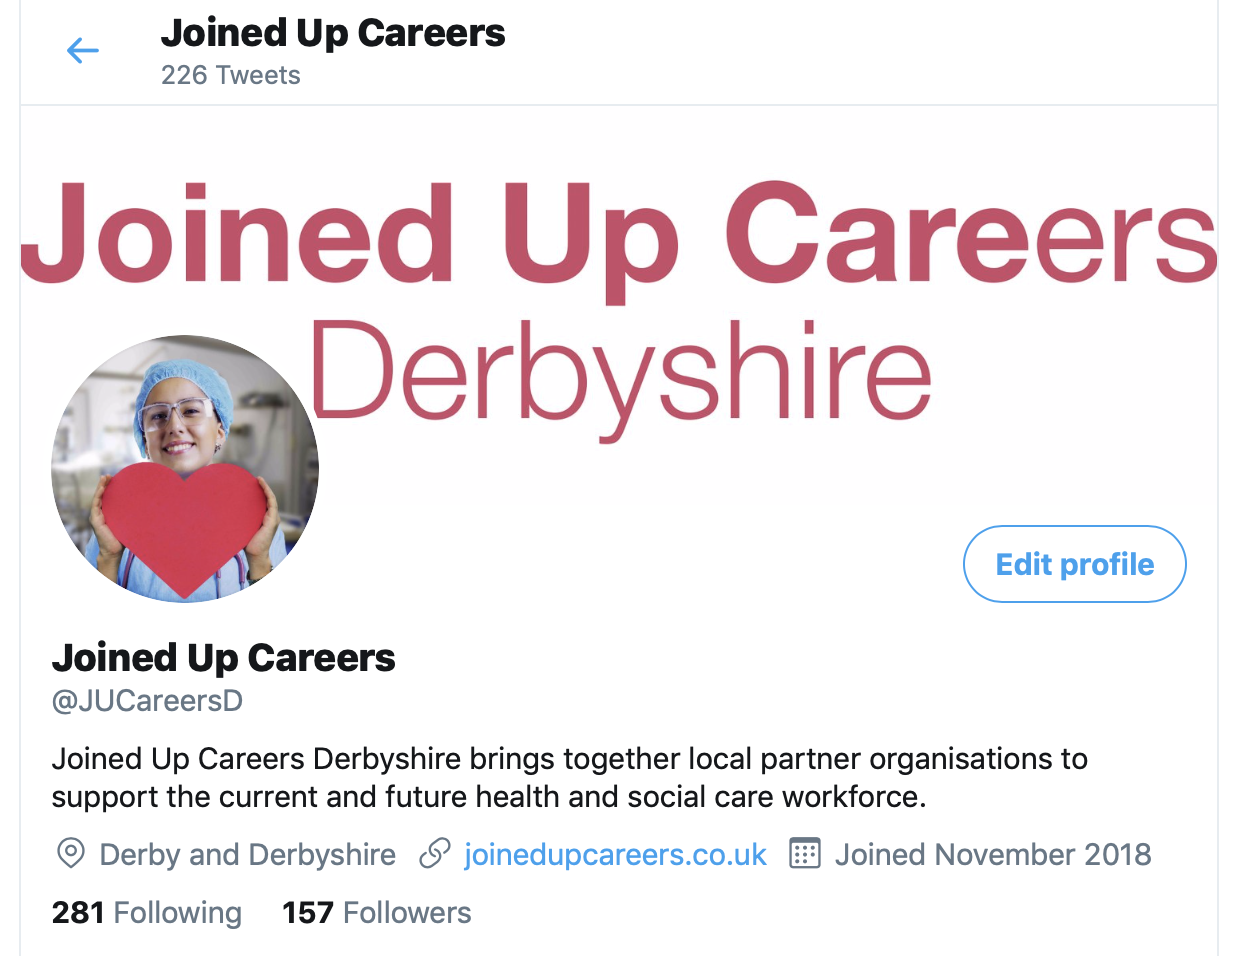 Getting social with Joined Up Careers